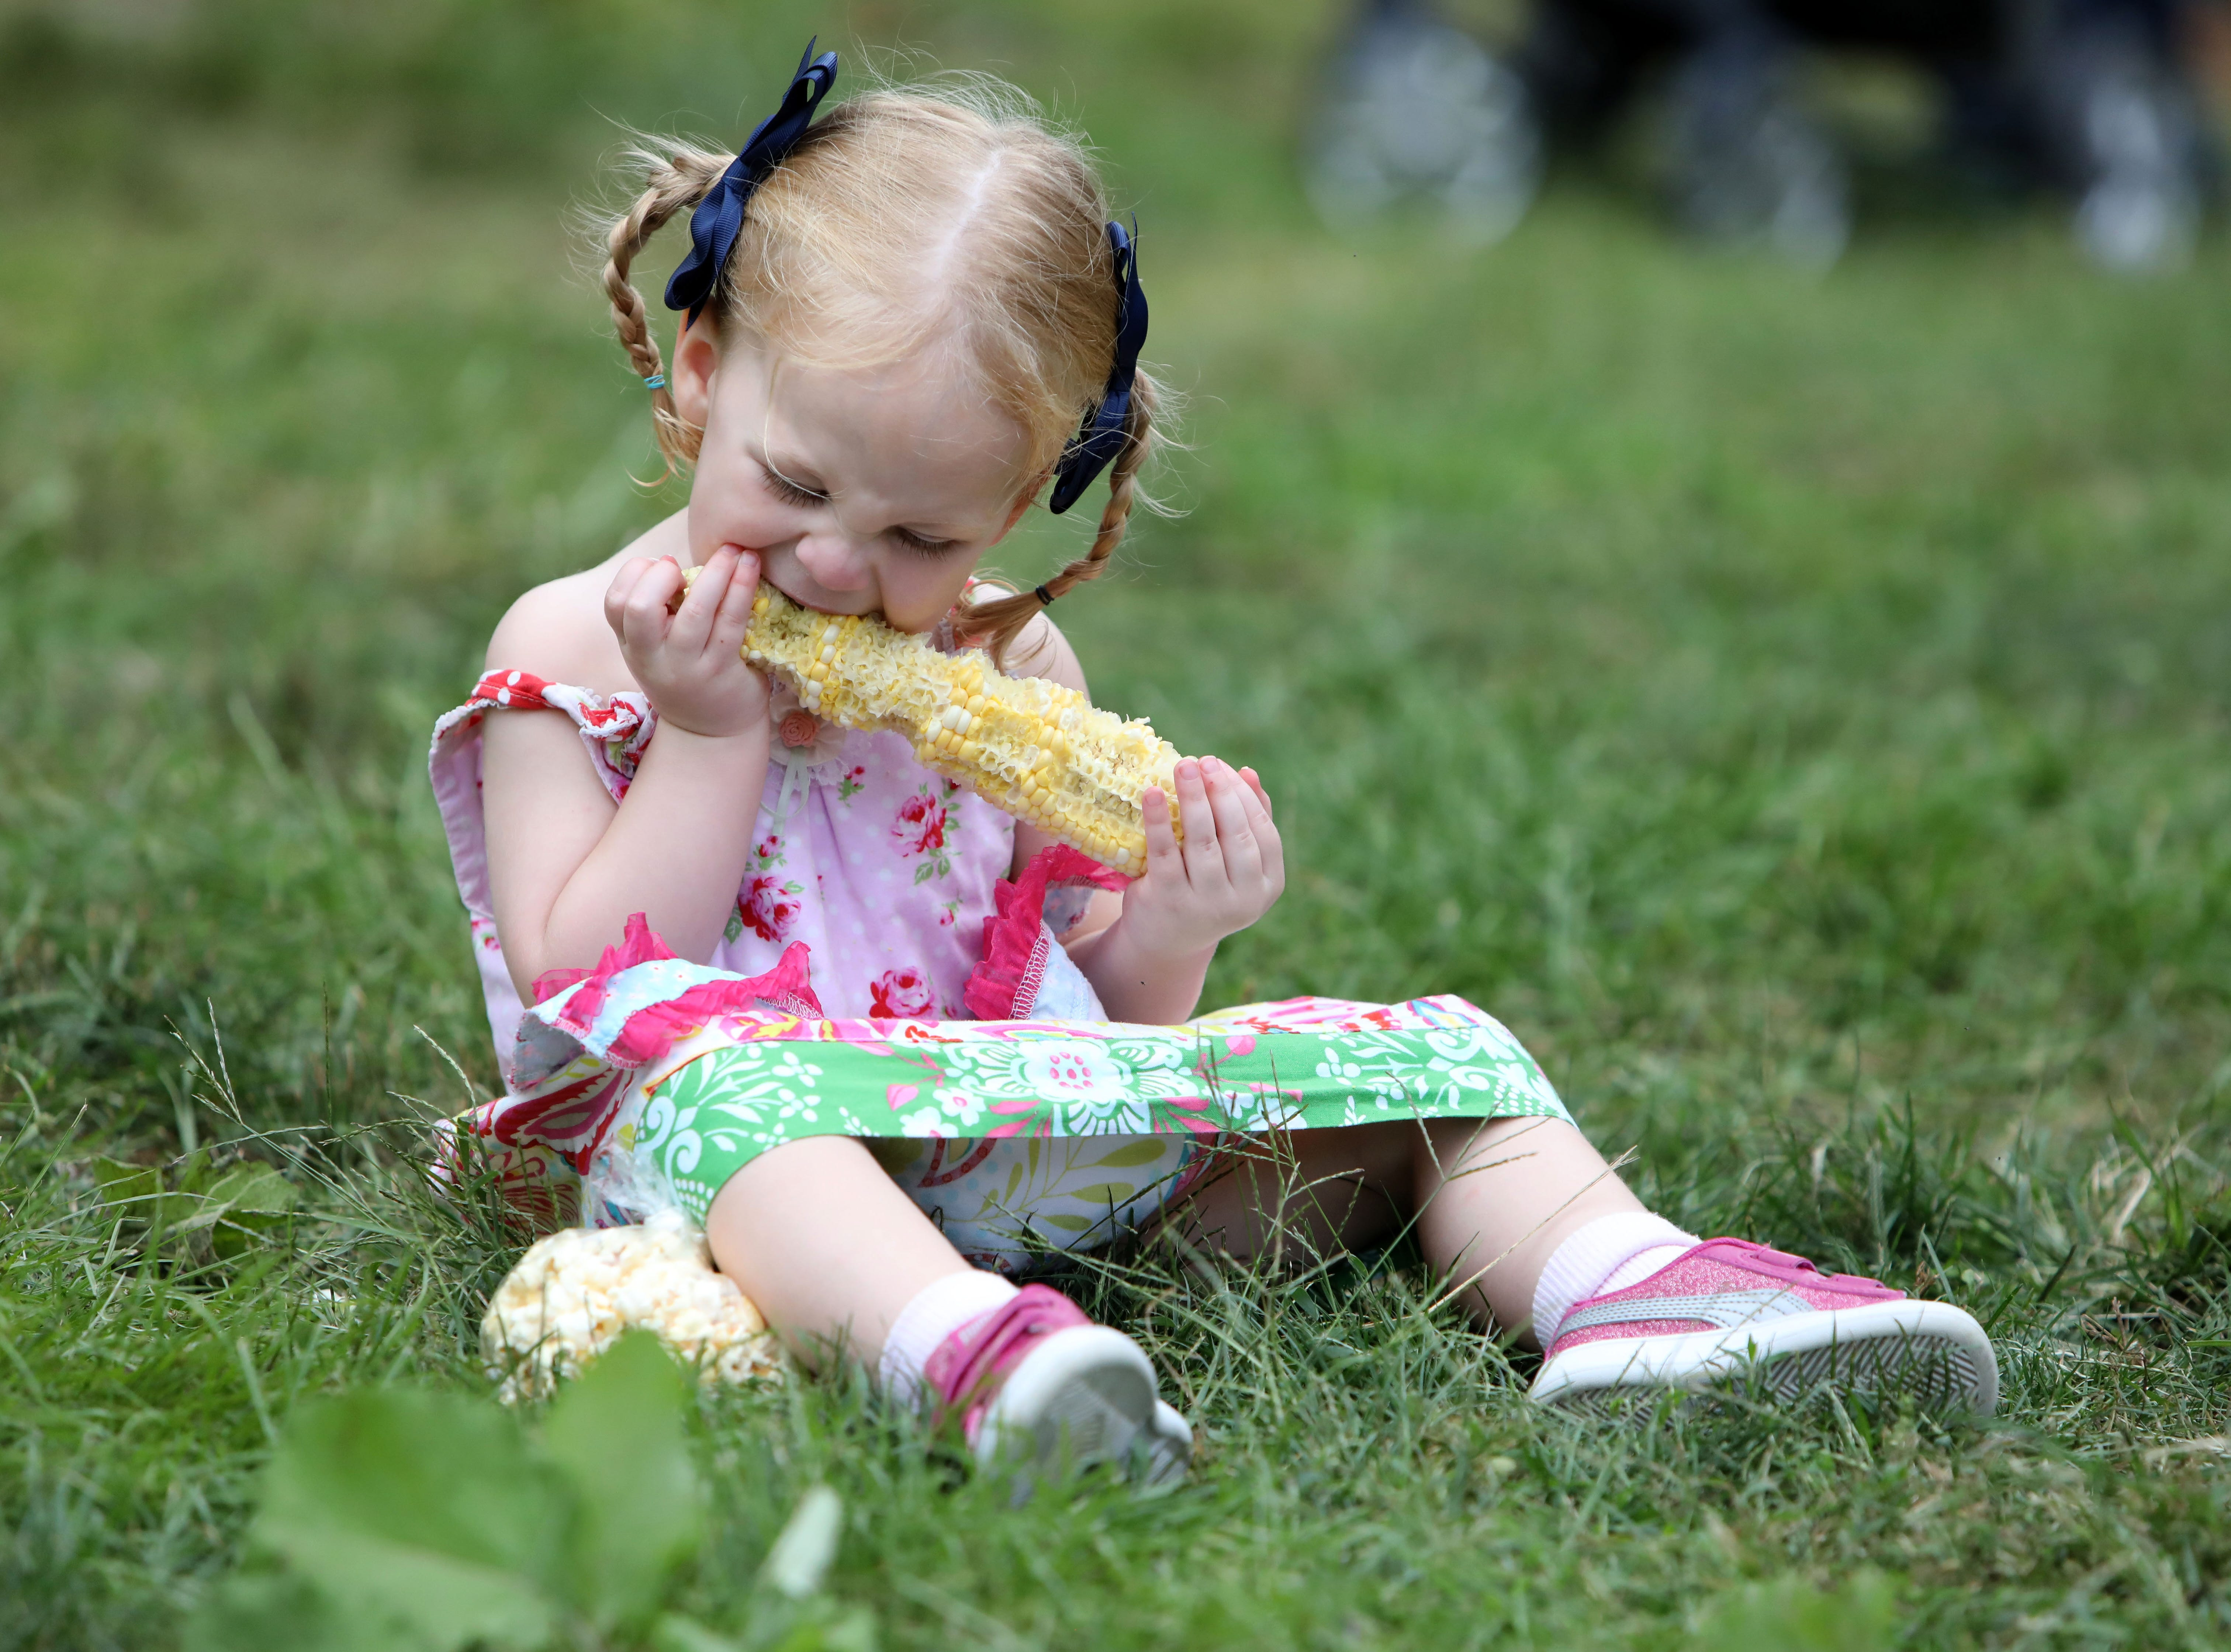 Niav Fay, 2, of Croton eats fresh corn at Cornucopia, a festival celebrating corn and all things harvest related, at Philipsburg Manor Sept. 2, 2018 in Sleepy Hollow.